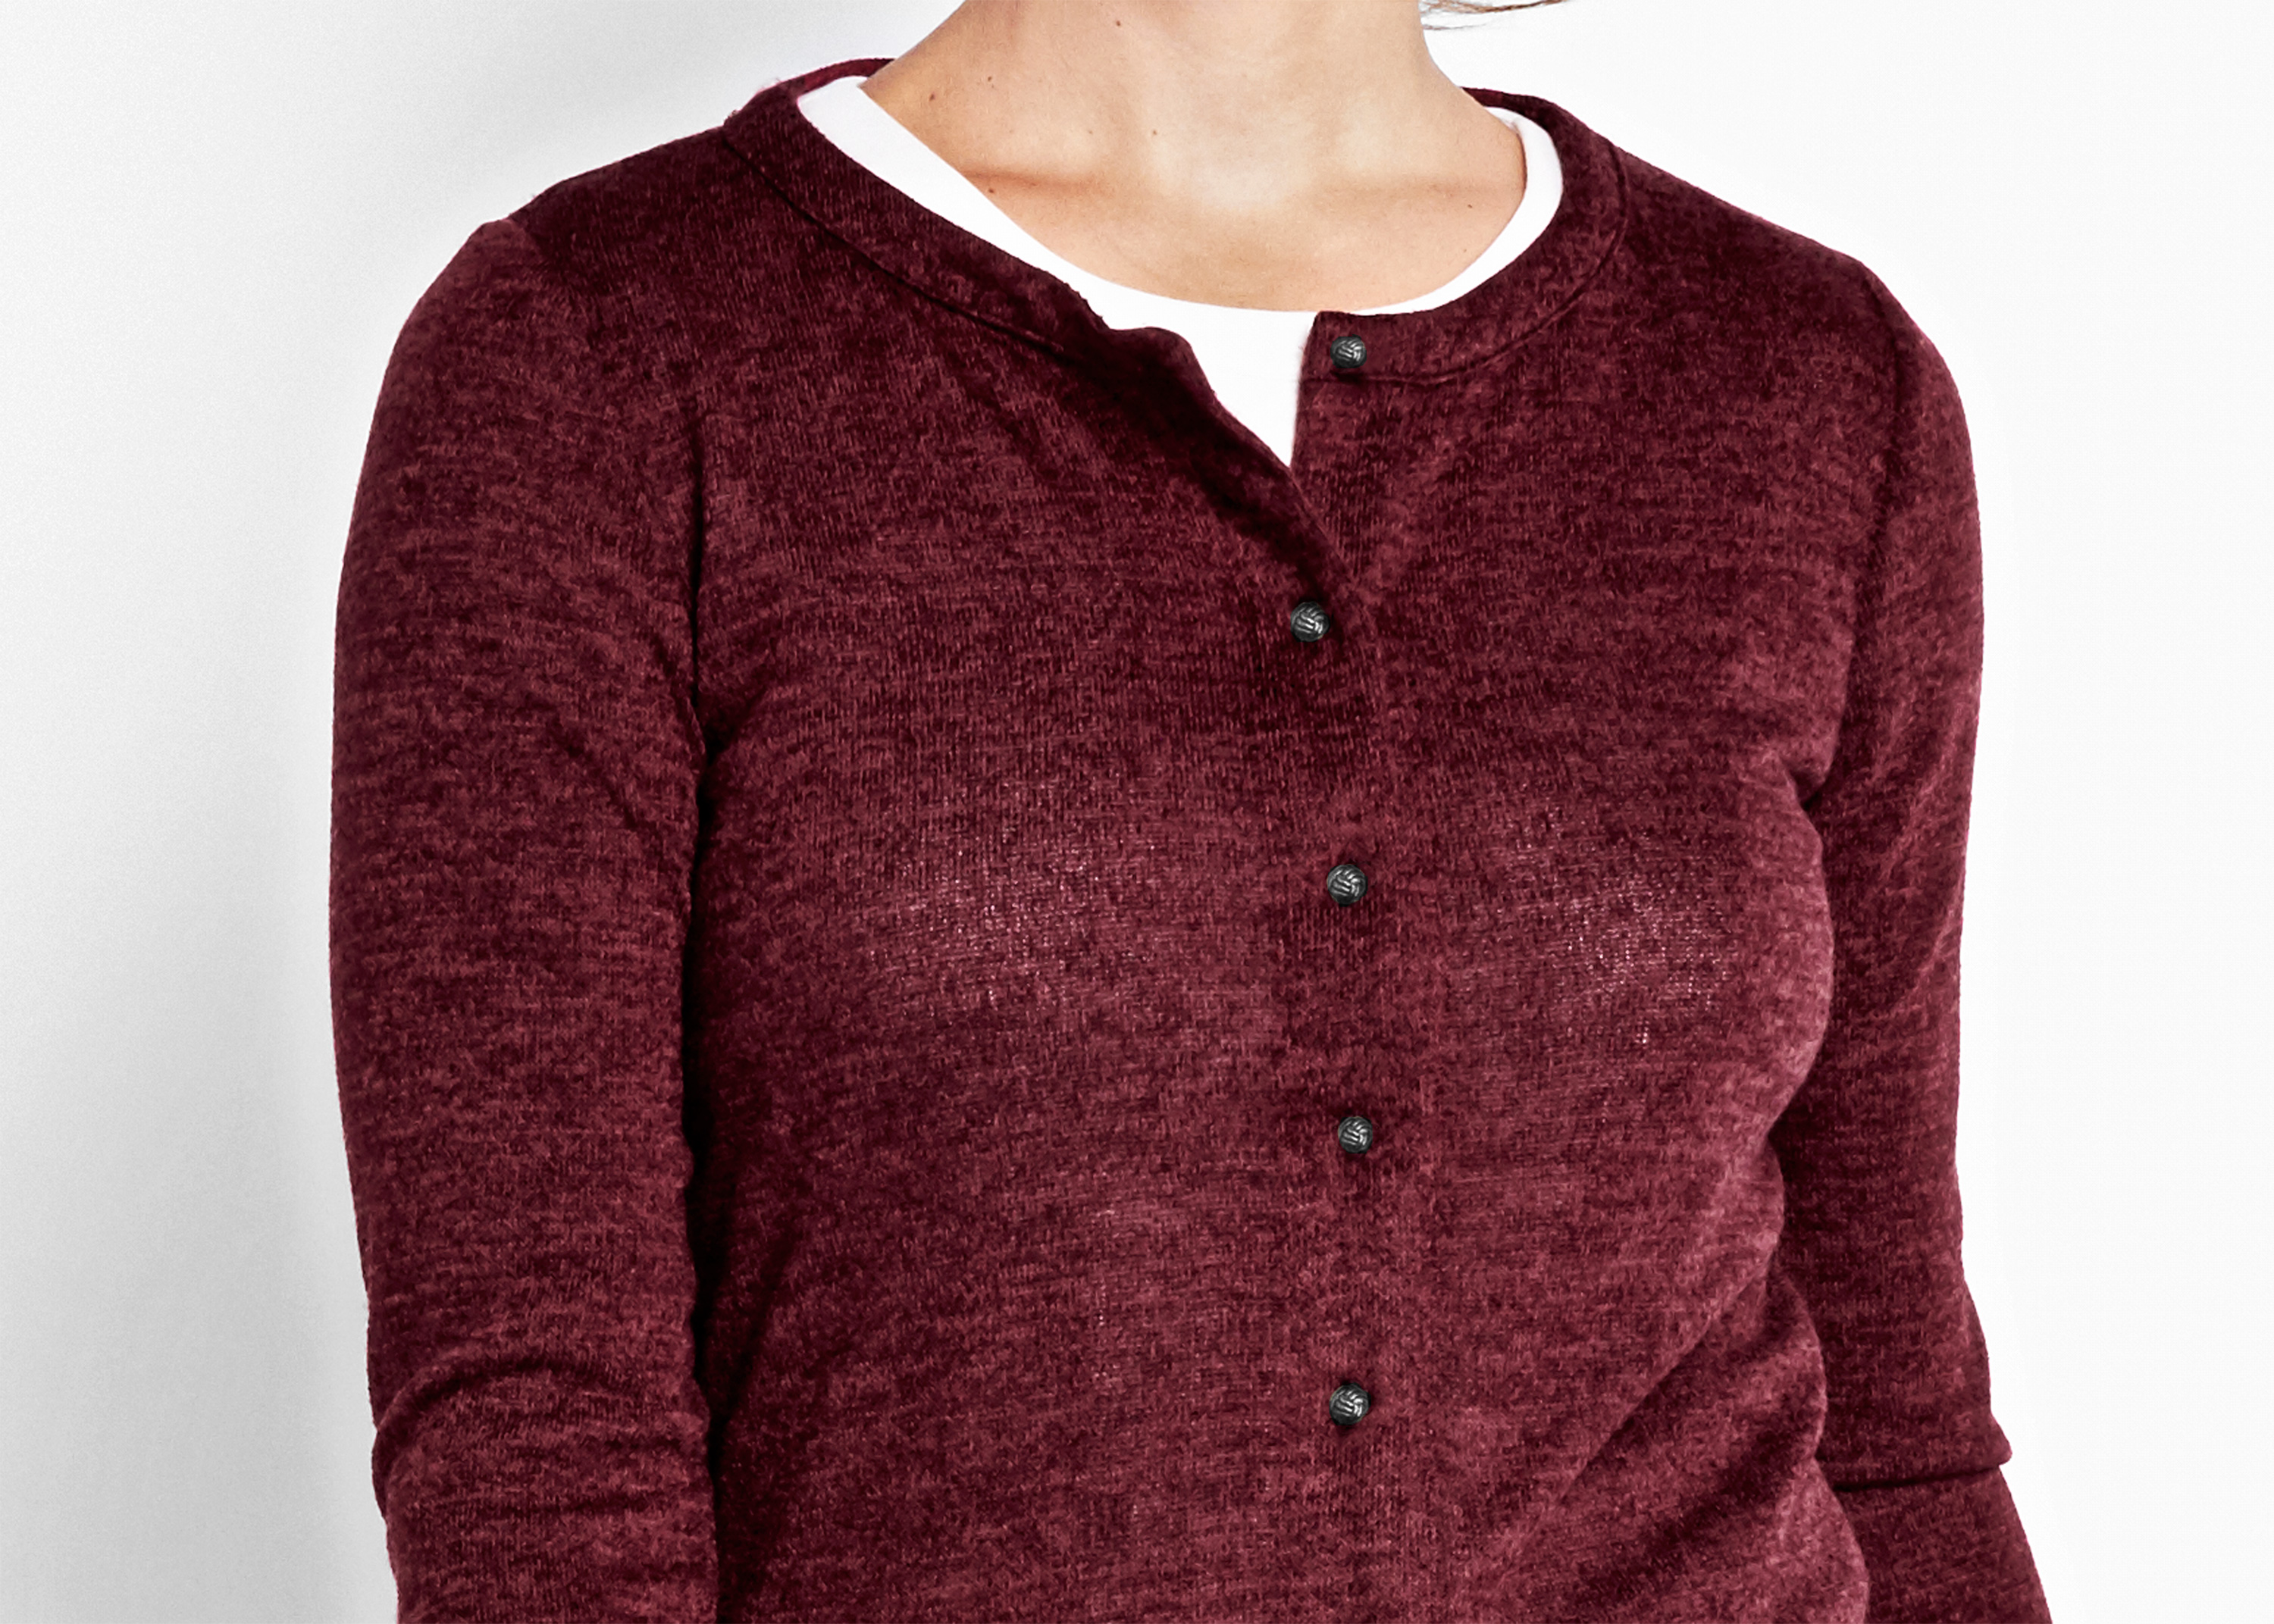 OF Mercer Burgundy Whitney Cardigan